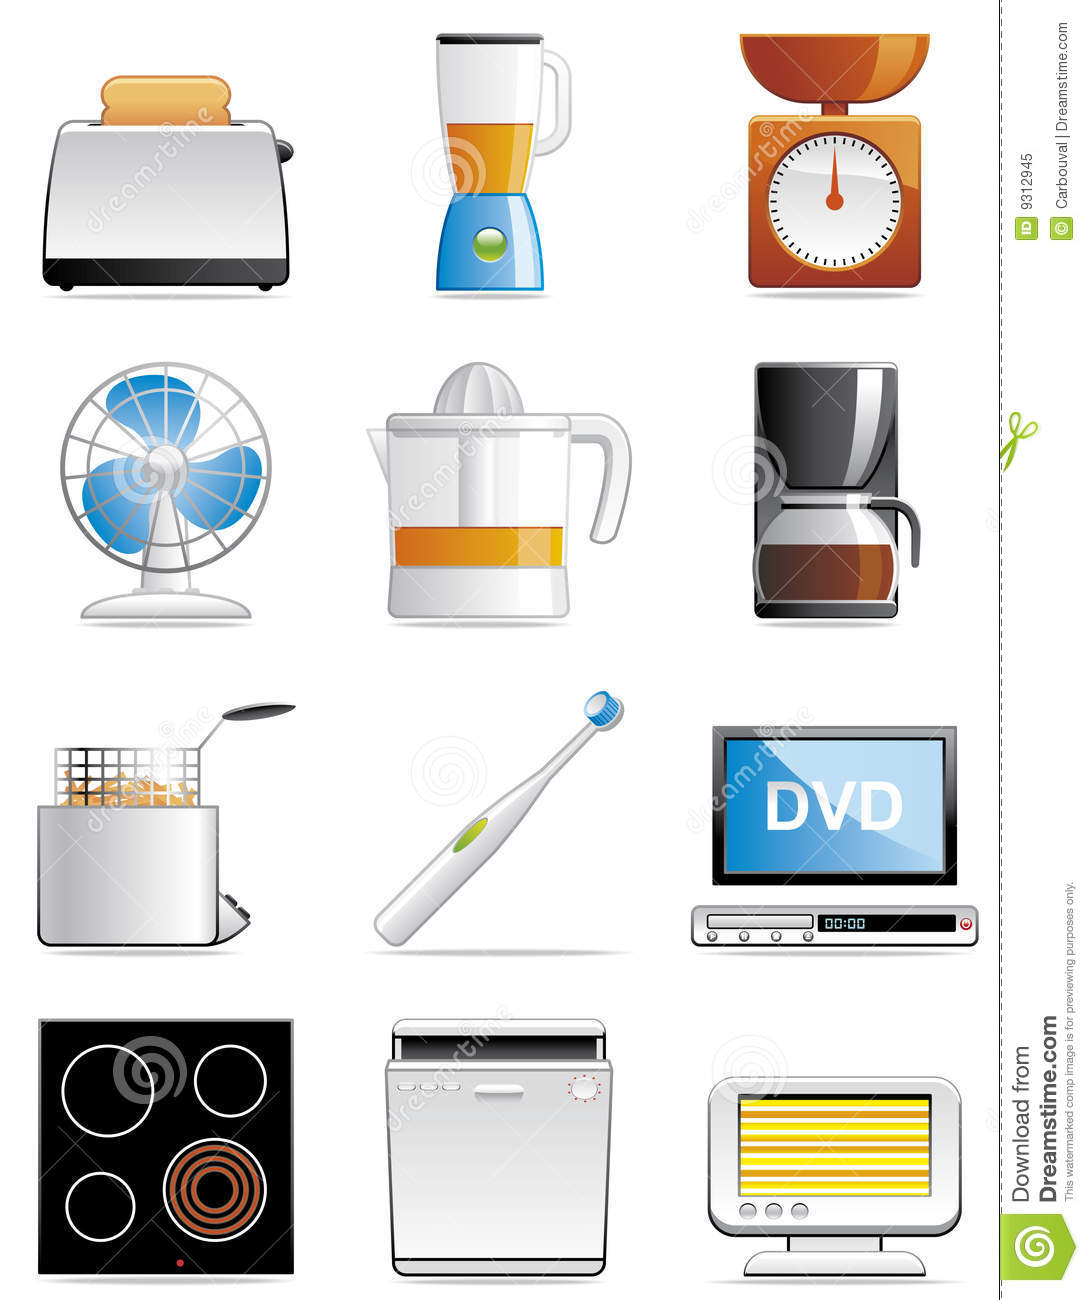 Household appliance icons stock vector. Illustration of ...